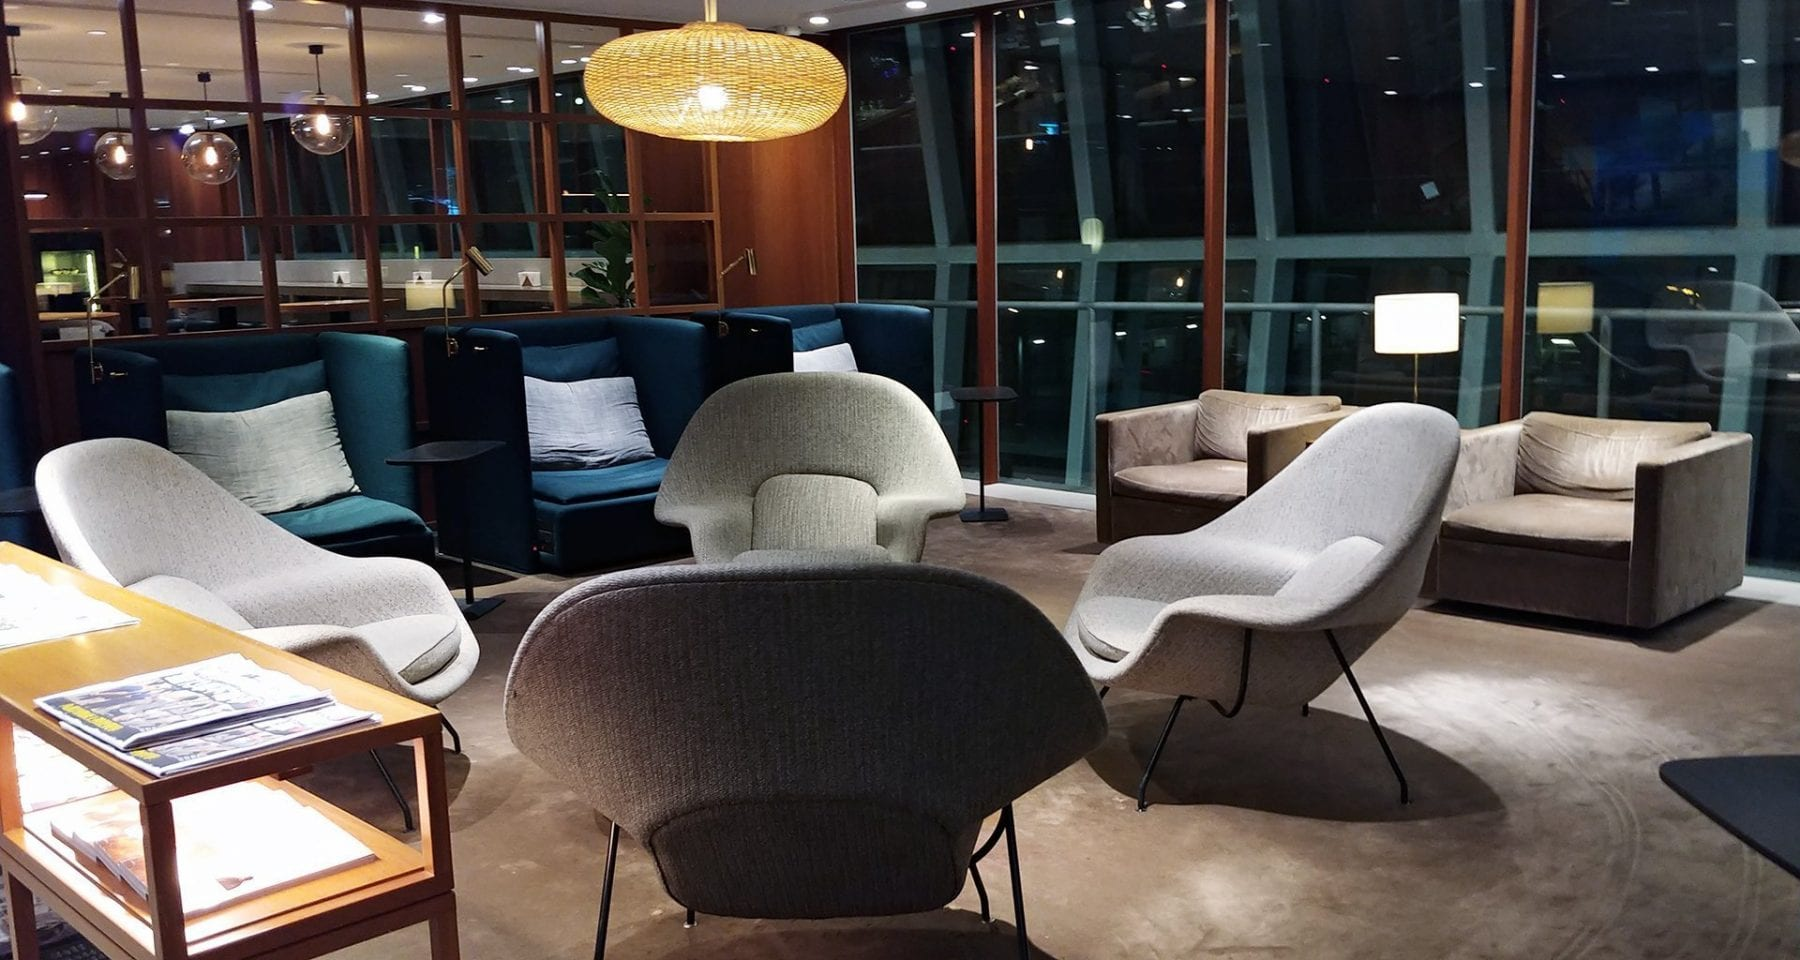 Cathay Pacific Lounge Bangkok Airport